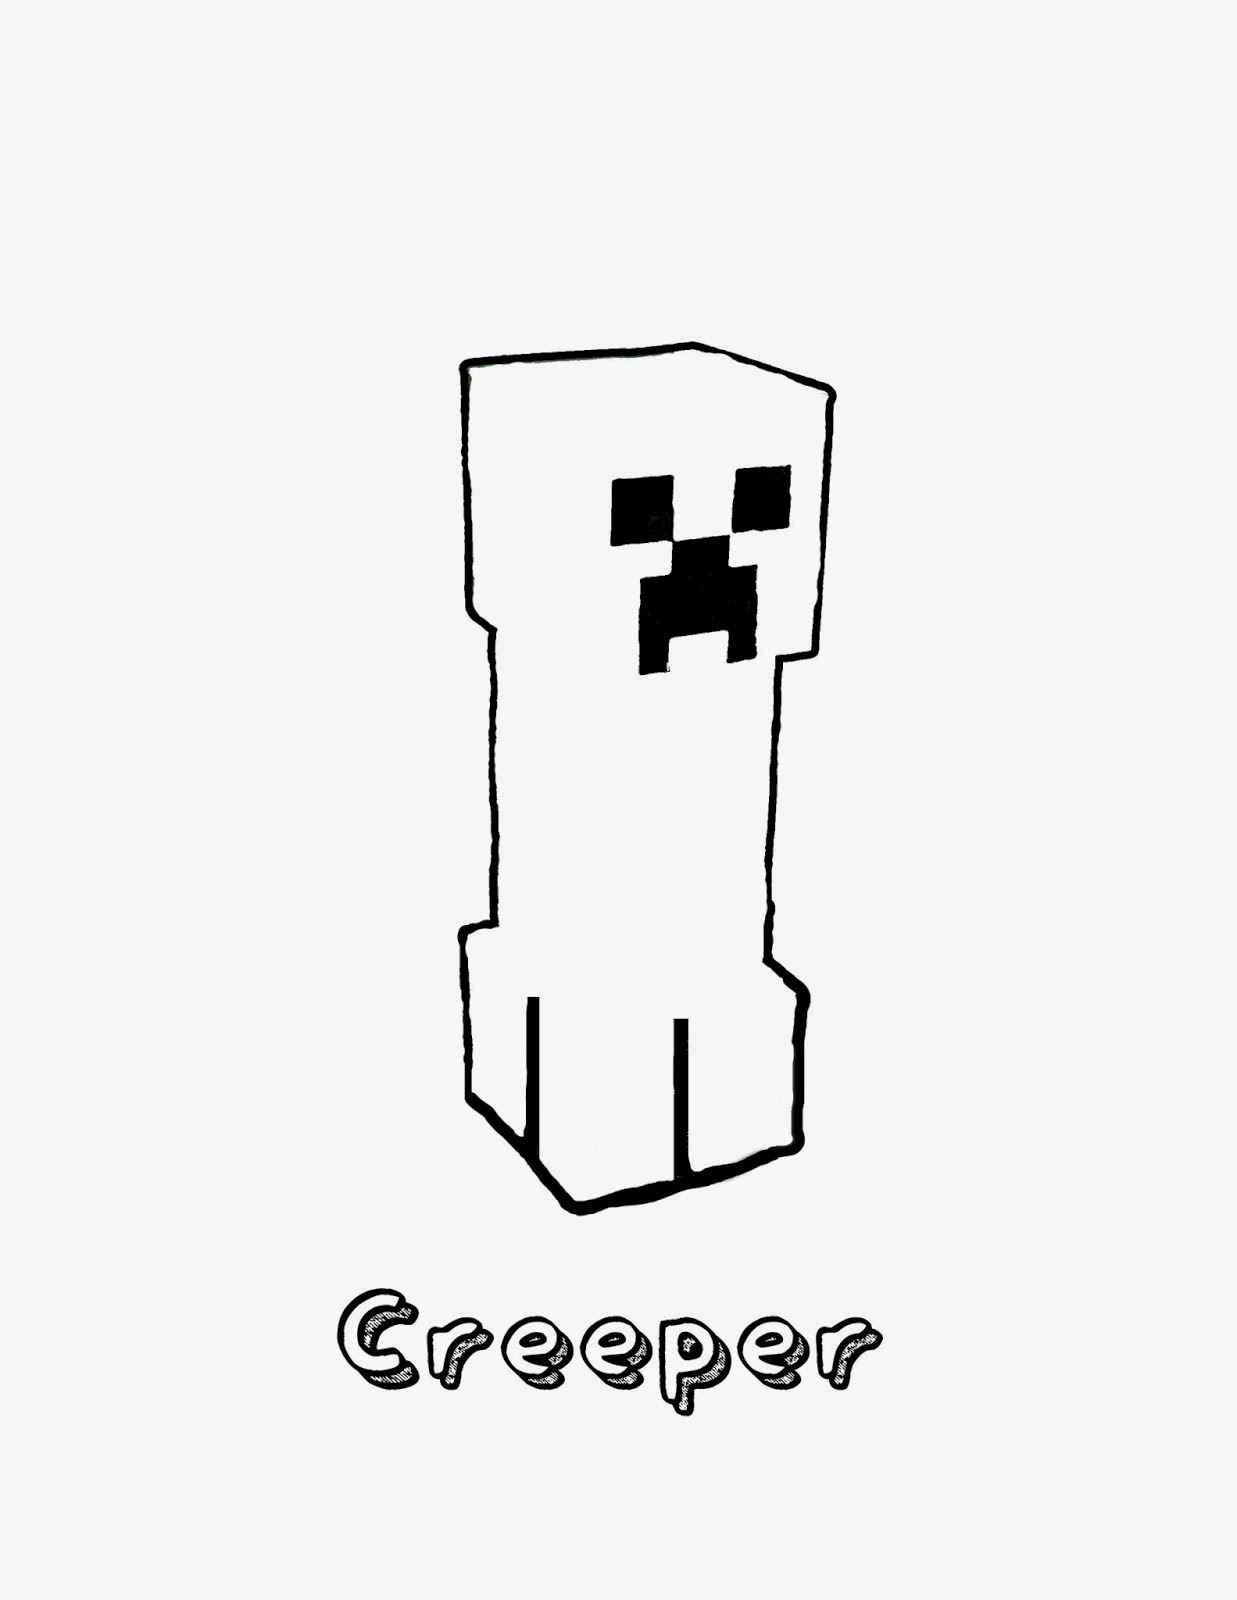 minecraft creeper coloring page - minecraft creepers